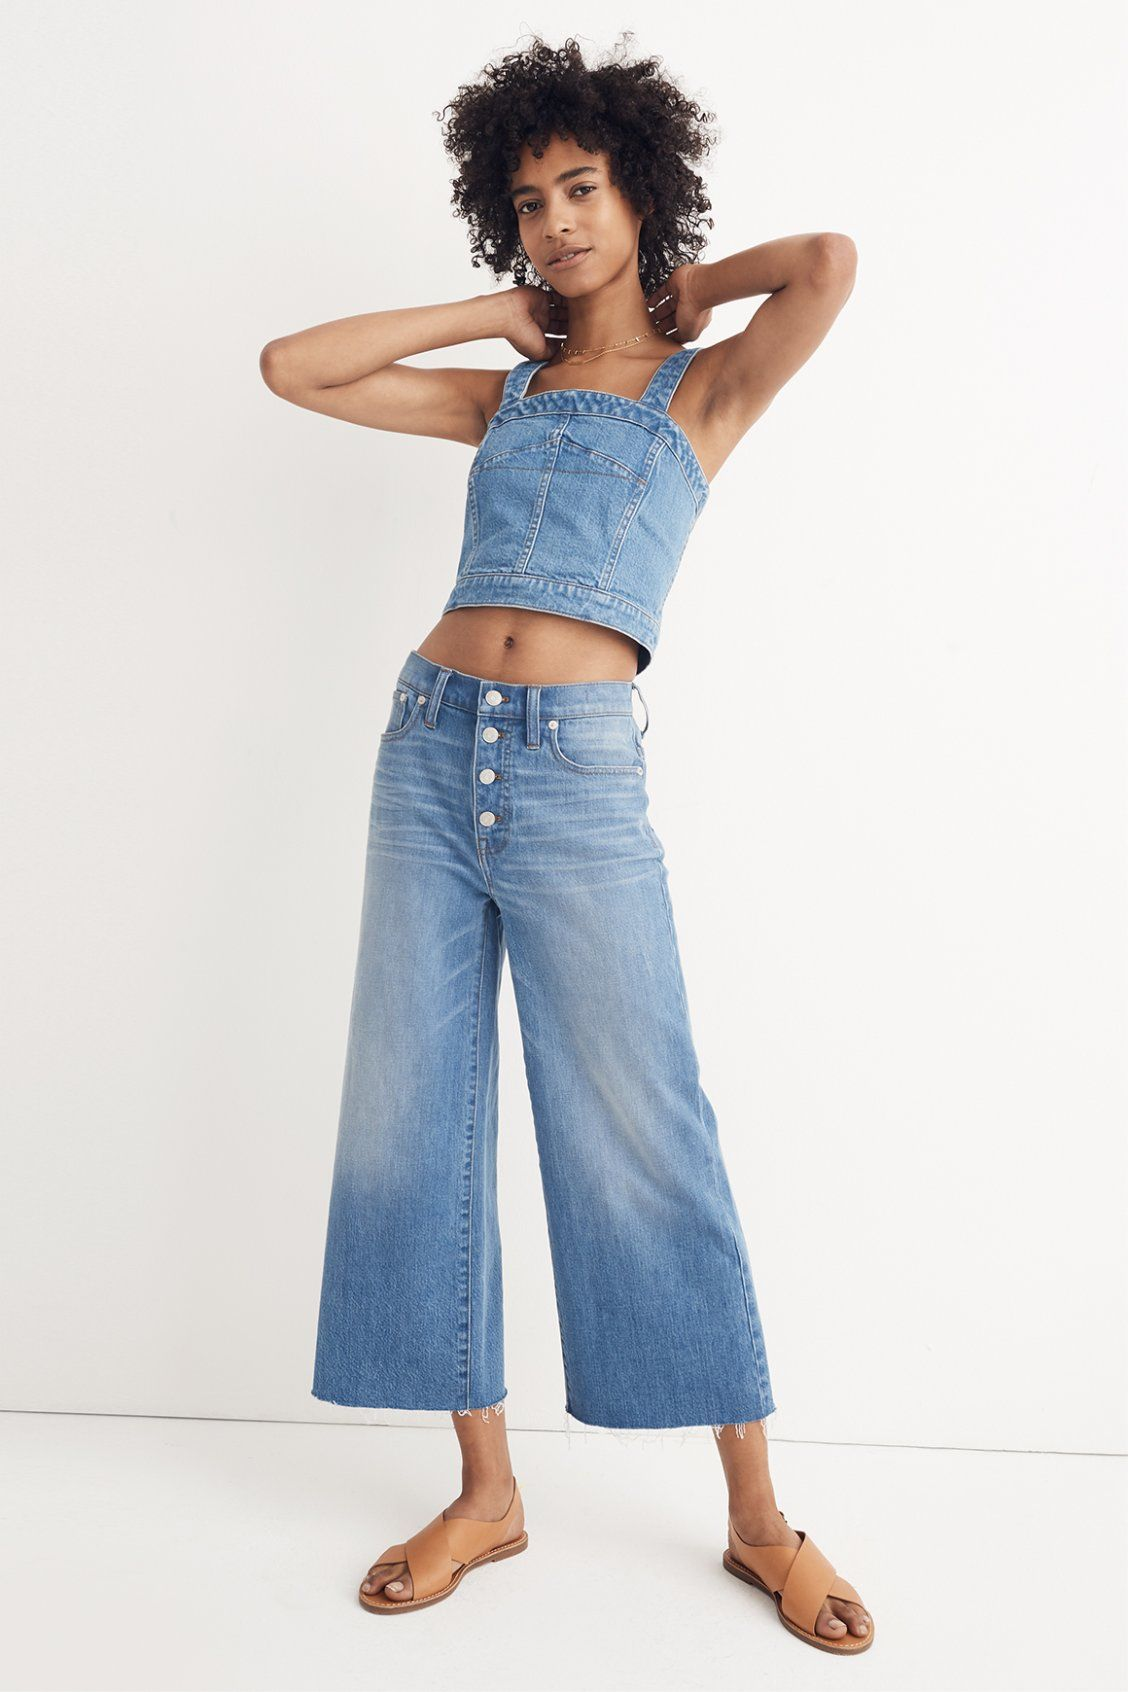 a6b400521d madewell denim crop top worn with the wide-leg crop jeans  button-front  edition + the boardwalk crossover sandal. call 866 544 1937 or email ...